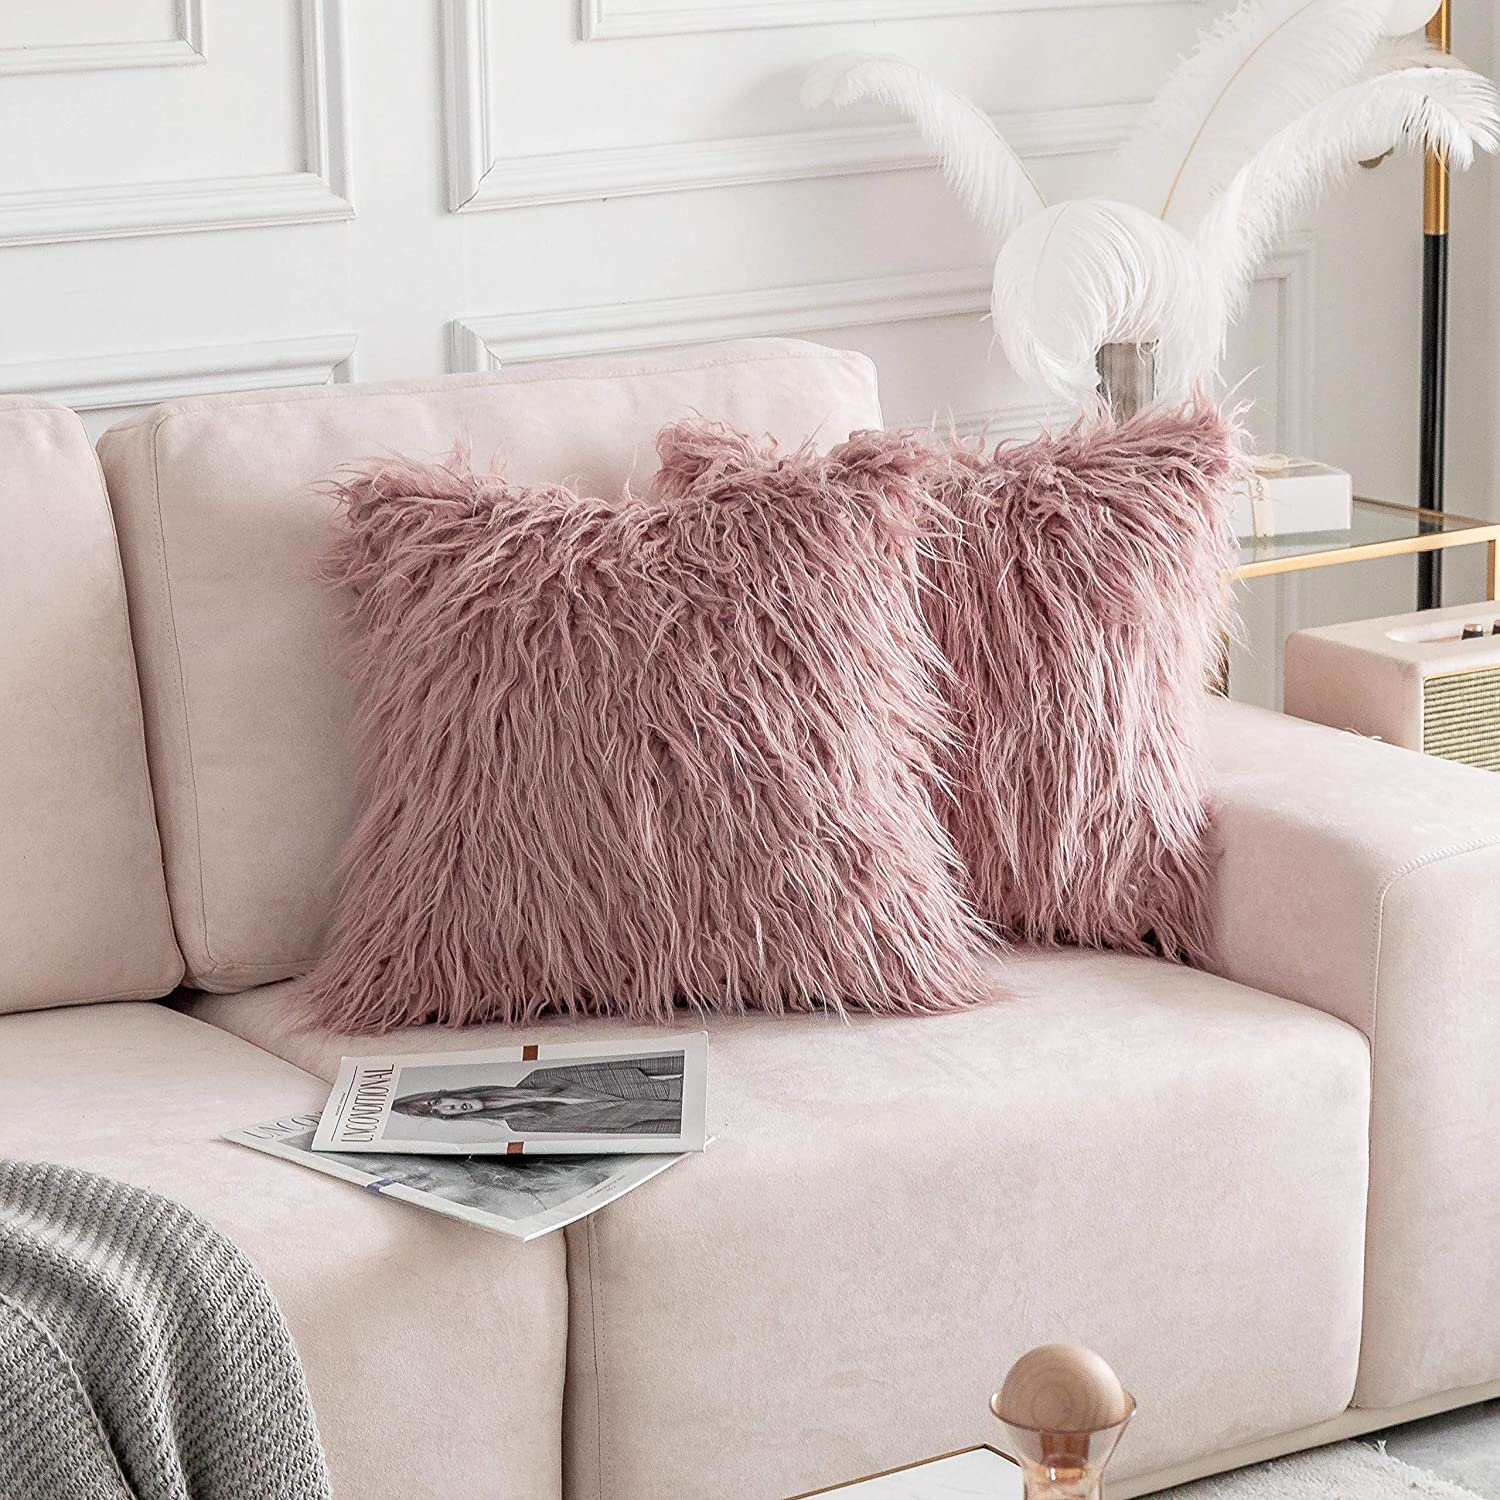 Home Brilliant Throw Pillow Covers Decorative Super Soft Plush Mongolian Faux Fur Cushion Case for Bed, Set of 2 (20 x 20 inch, 50cm, Dusty Pink)